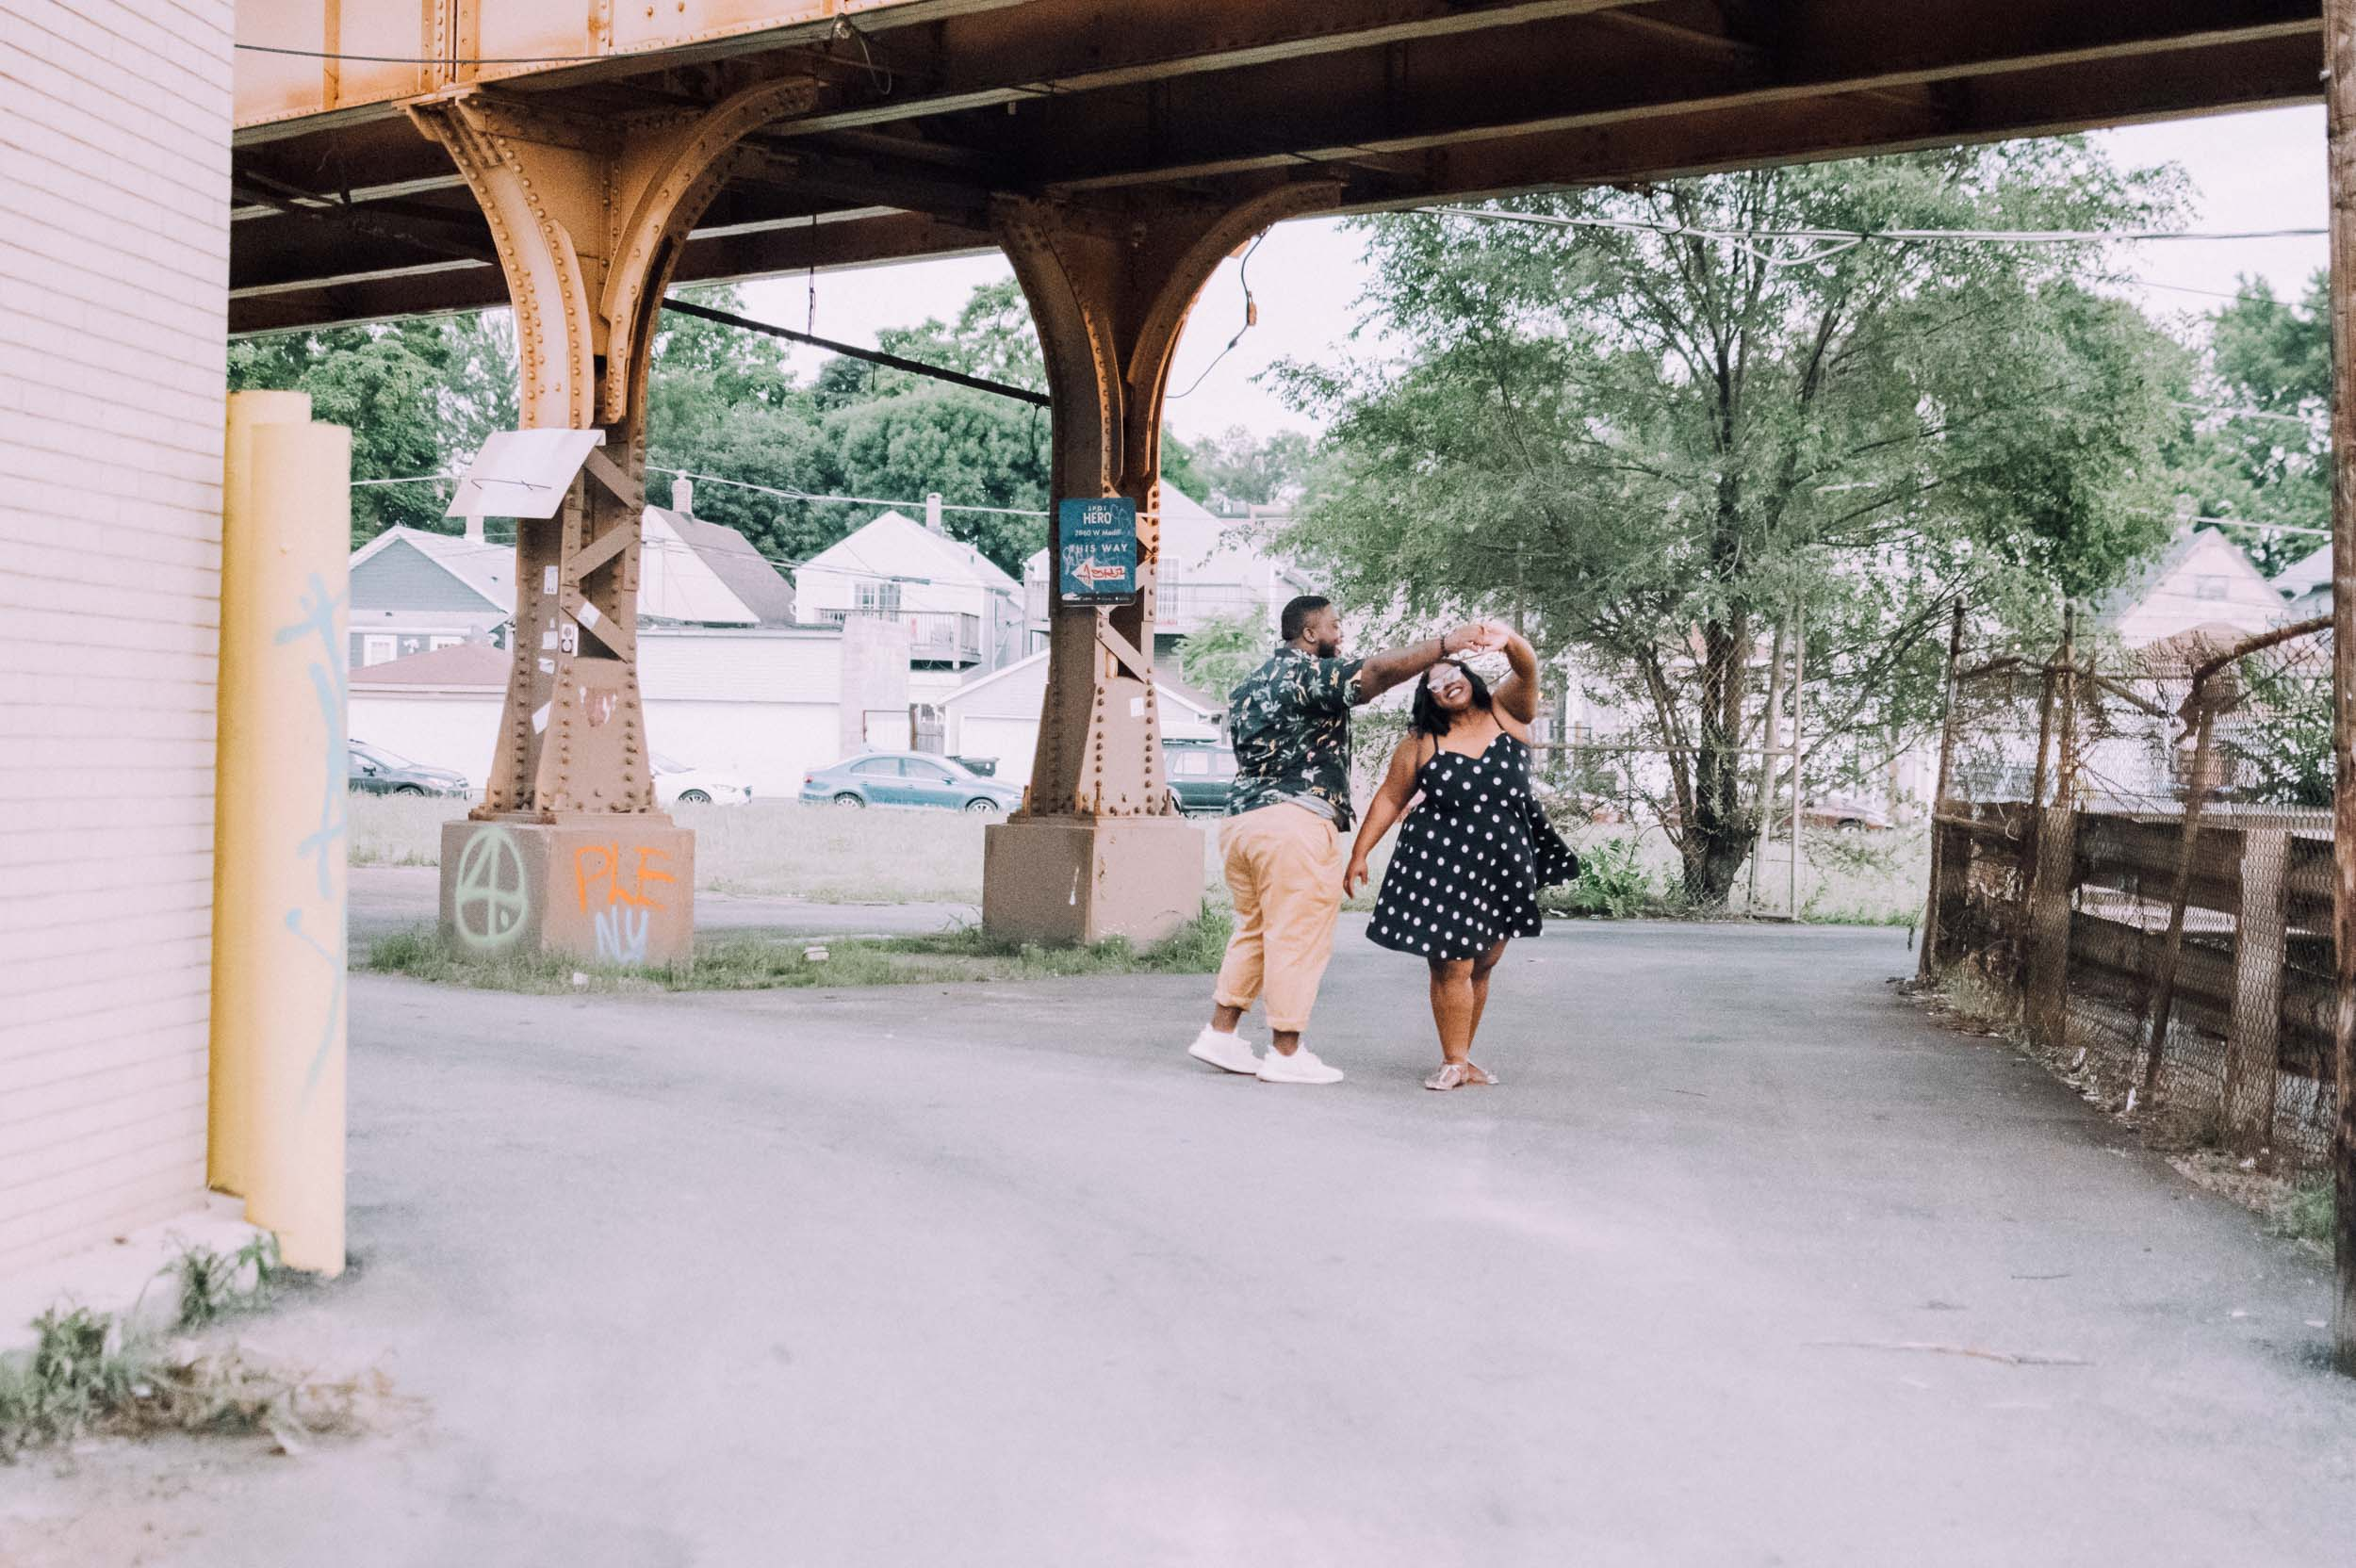 Logan Square, Chicago Elopement shot by Captured by Bianca 2019